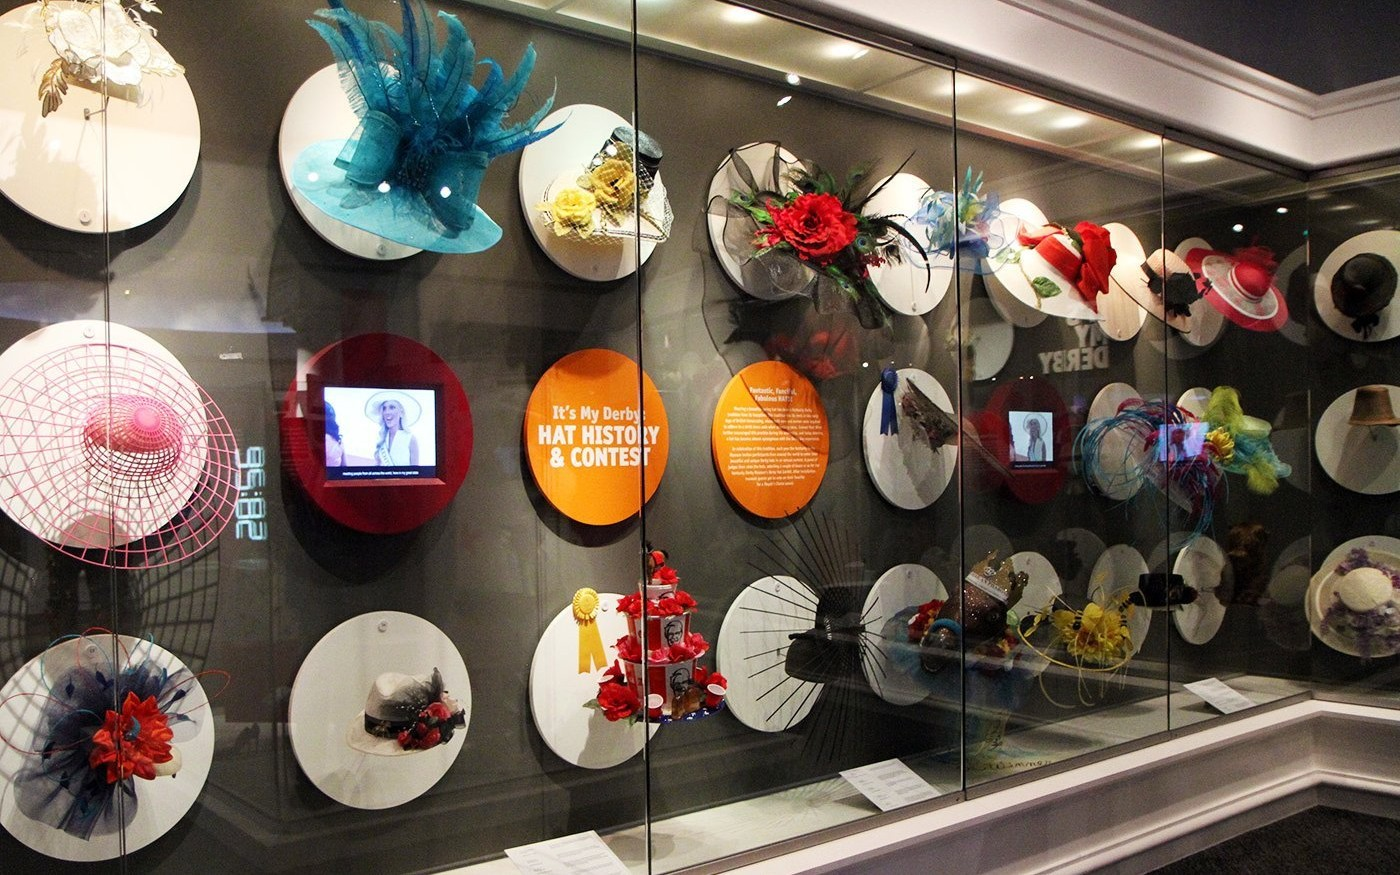 Kentucky Derby Museum's It's My Derby fashion exhibit updated with winners of  the 2016 Hat Contest and celebrity Derby Day ensembles